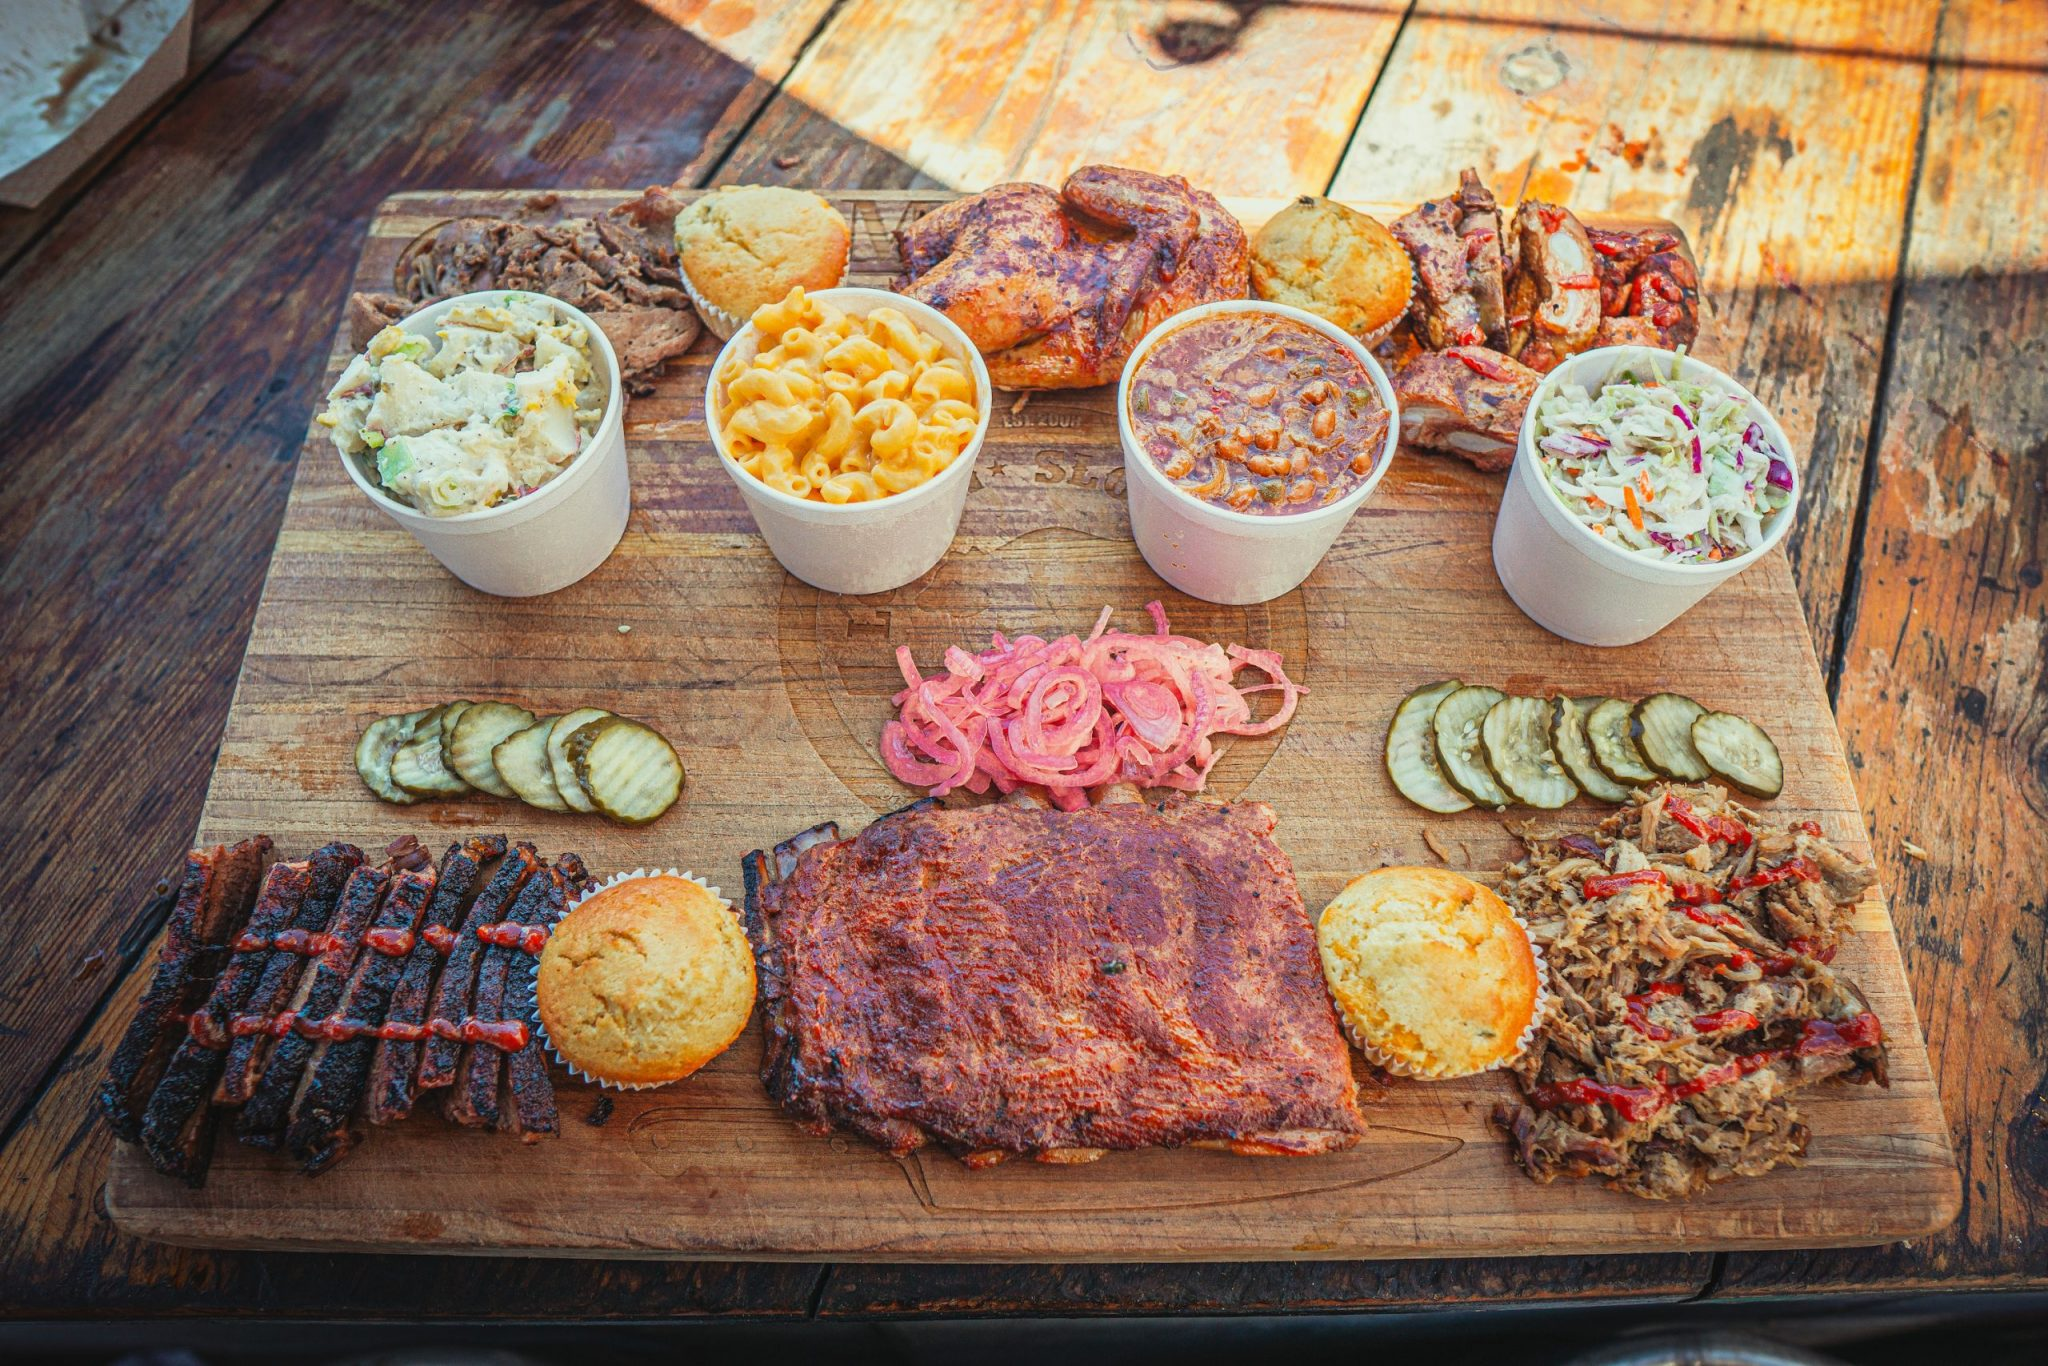 The Tailgaters BBQ Feast at Cali Comfort BBQ has smoked meat and sides